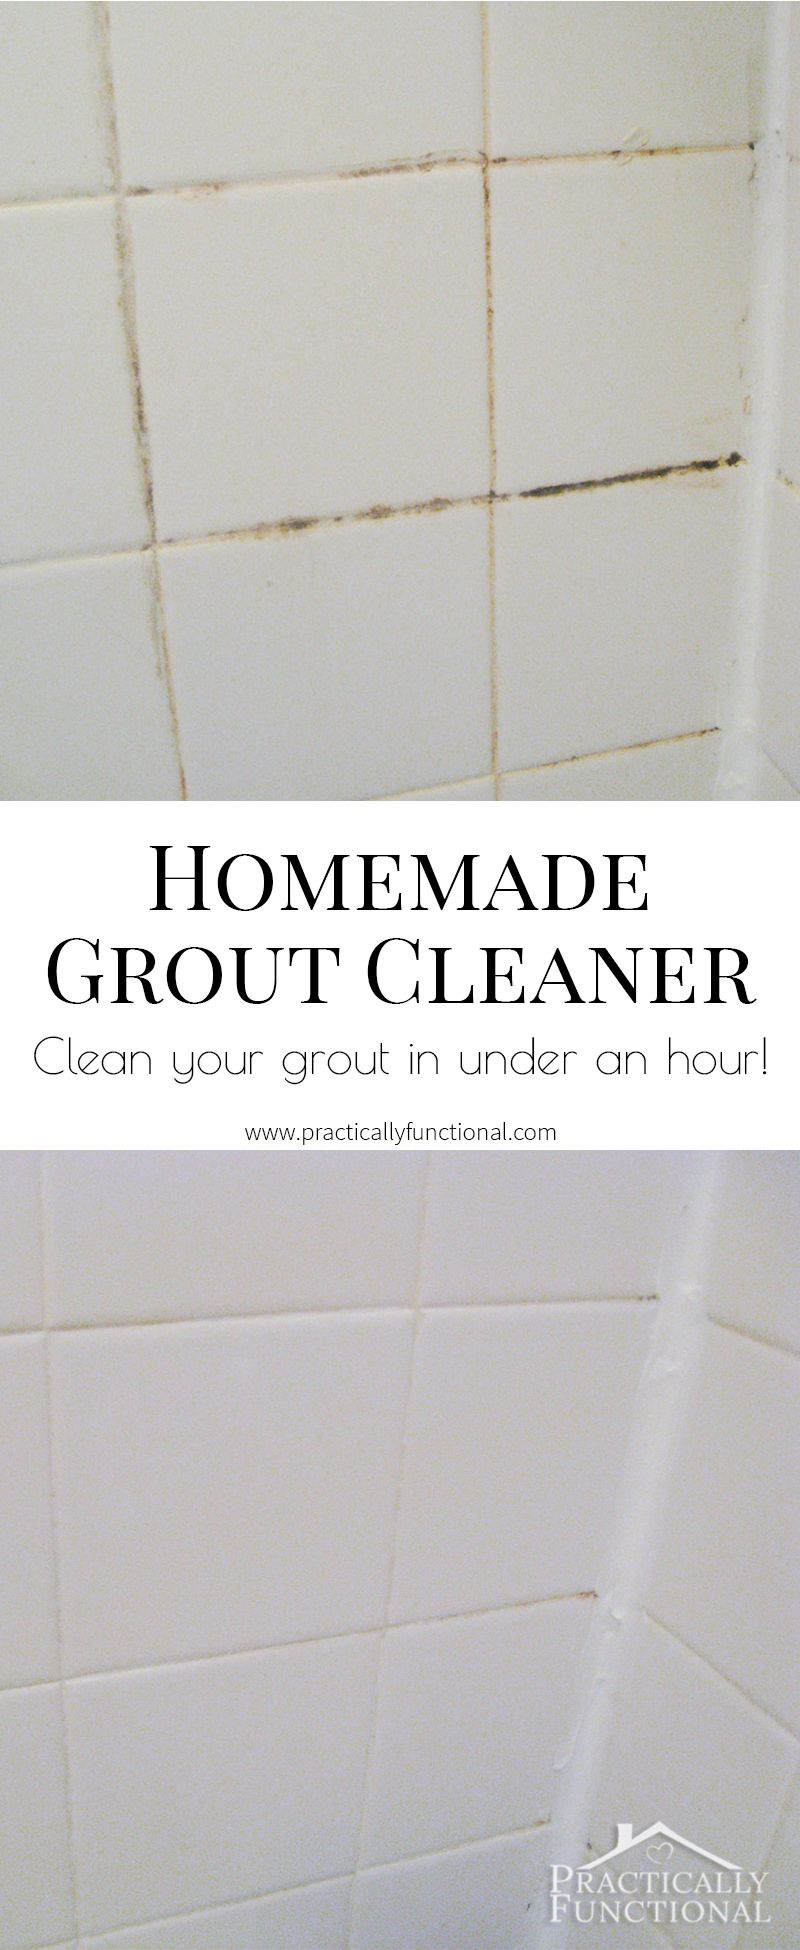 How To Clean Grout With A Homemade Grout Cleaner | Grout, Baking Soda And  Soda